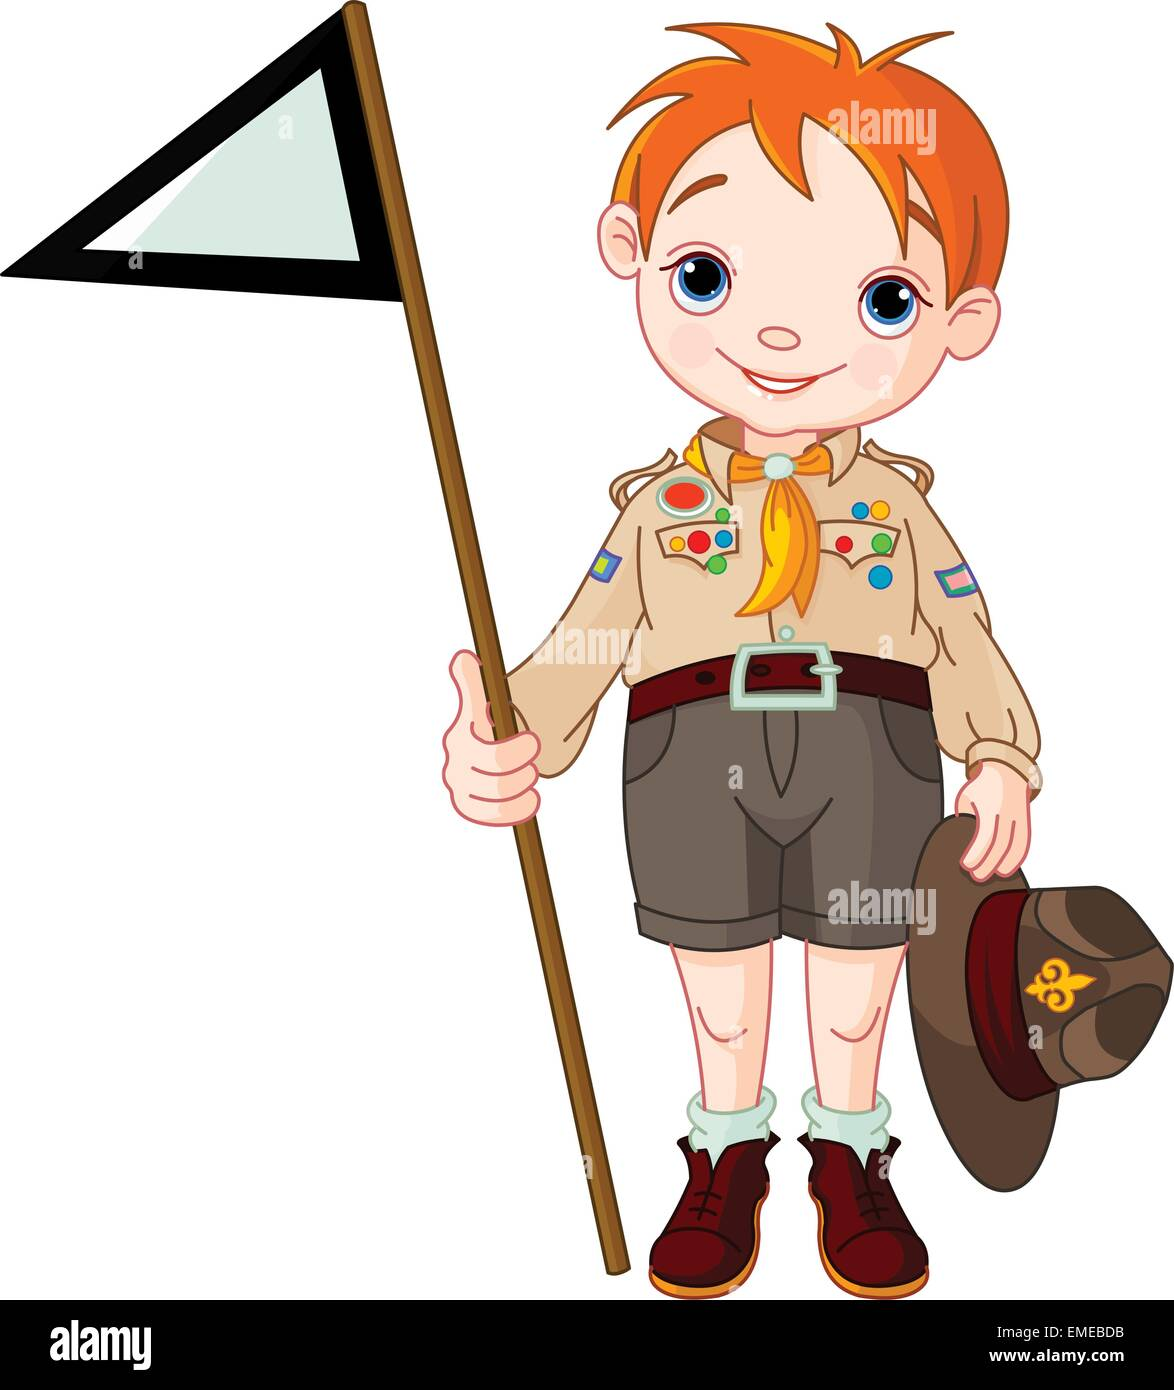 Boy Scout holding a flag - Stock Image